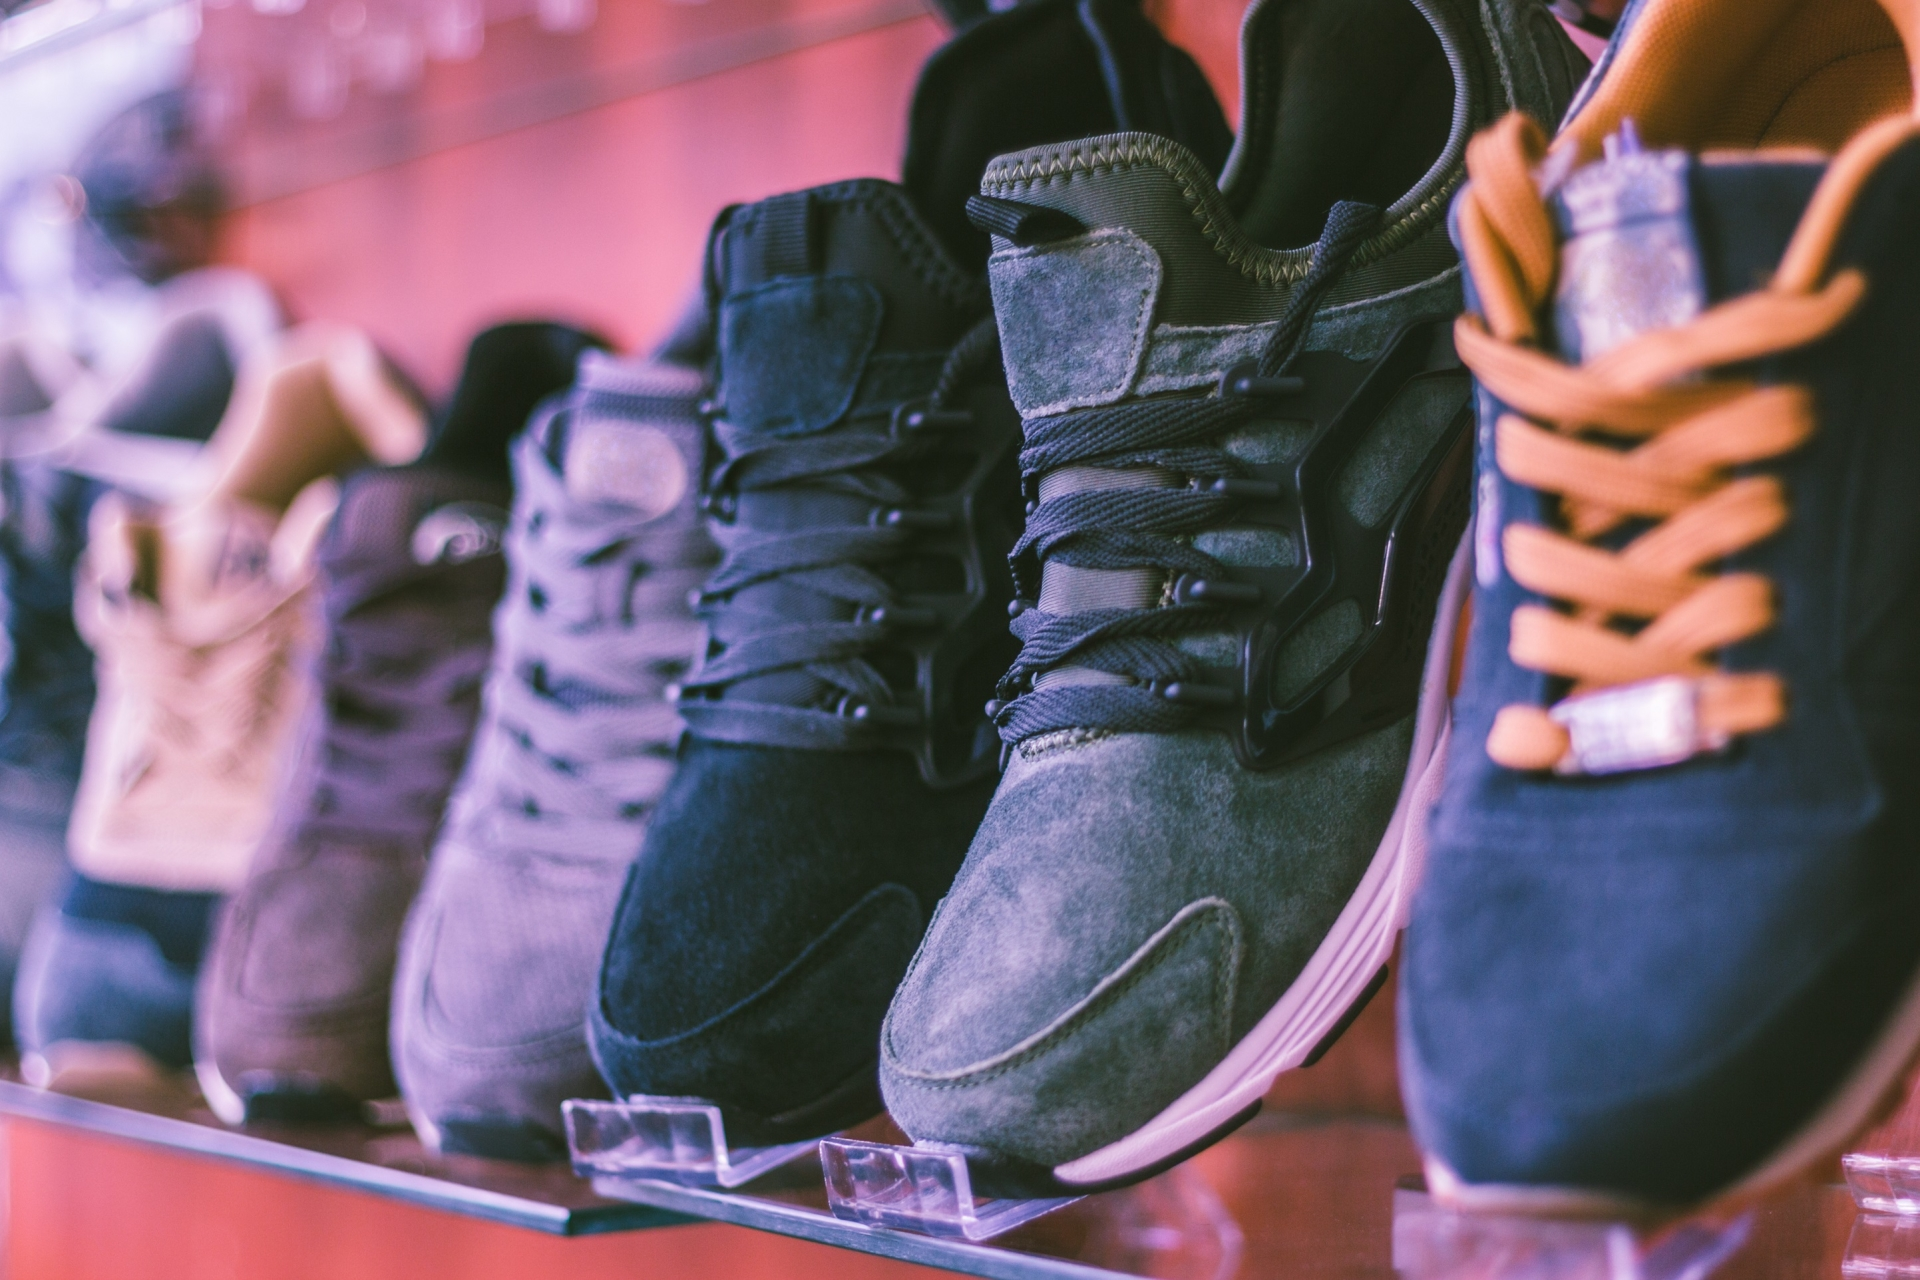 Certain Sneaker Brands Do Well In Some Countries Compared To Others